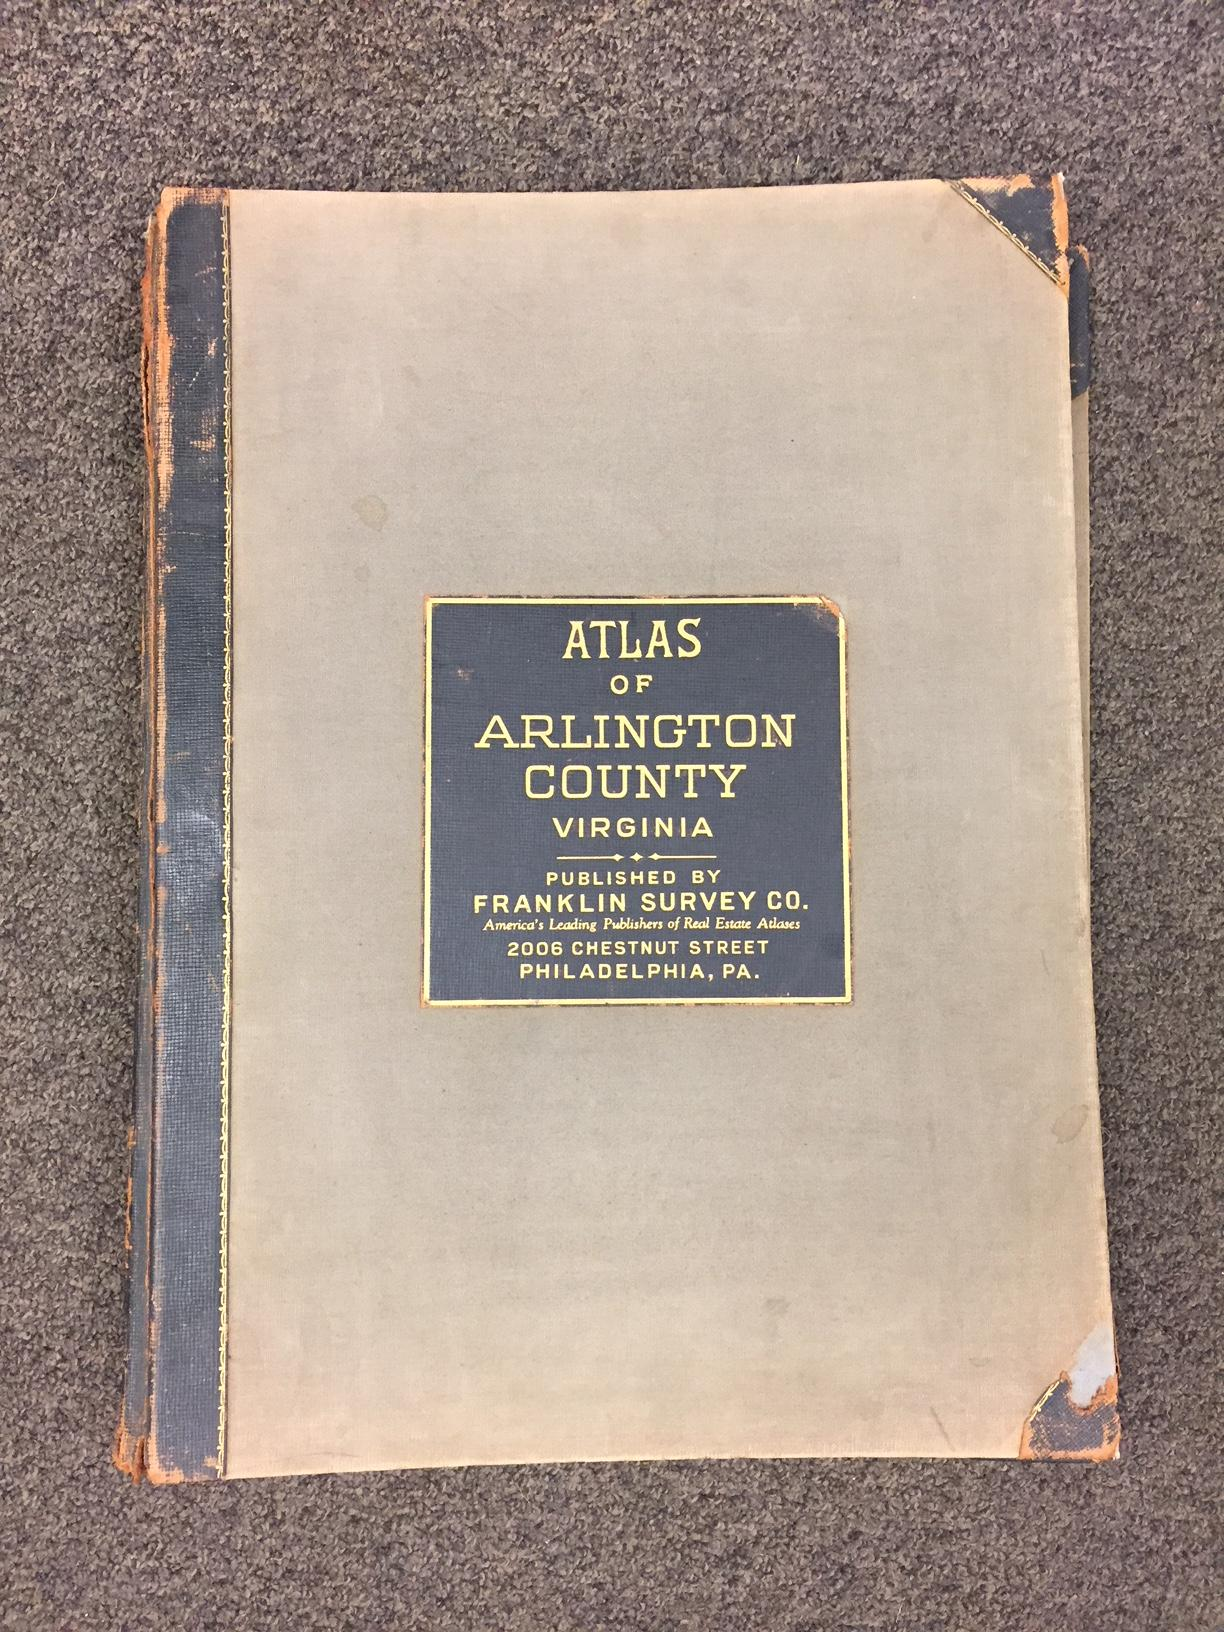 PLAT BOOK OF ARLINGTON VIRGINIA: COMPILED FROM OFFICIAL RECORDS, PRIVATE PLANS AND ACTUAL SURVEYS BY AND UNDER THE FRANKLIN SURVEY COMPANY. Franklin Survey Co.